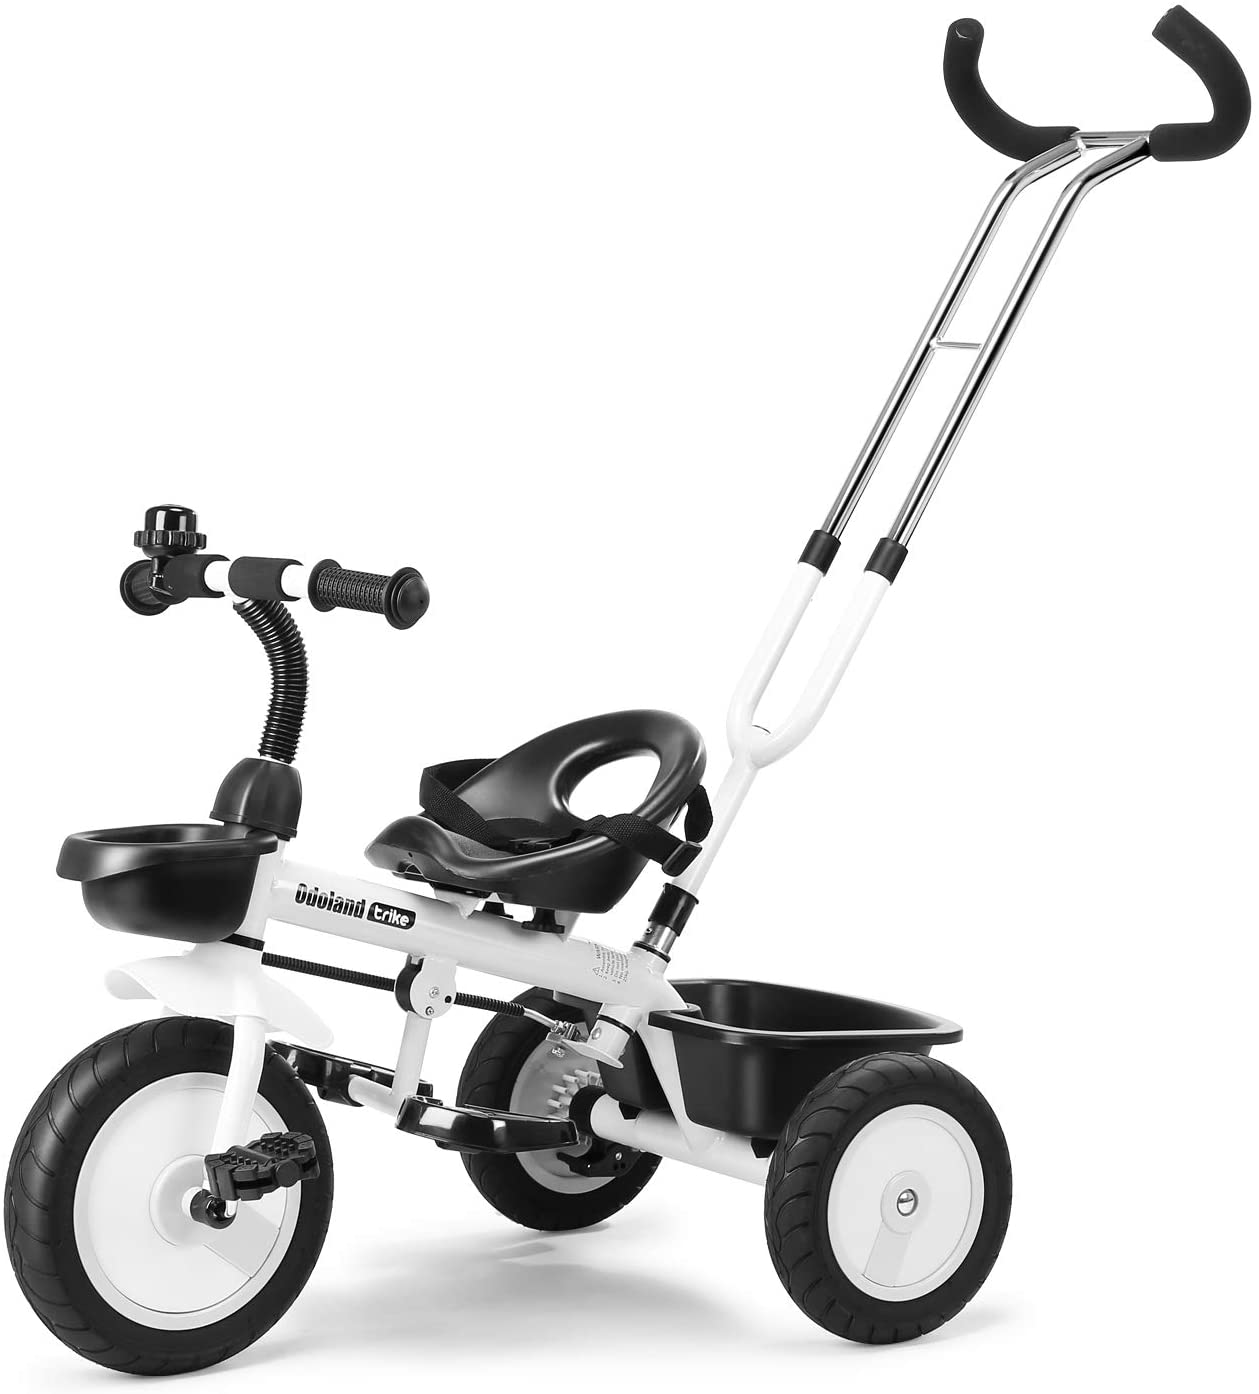 Welspo 3-in-1 Kids Tricycle